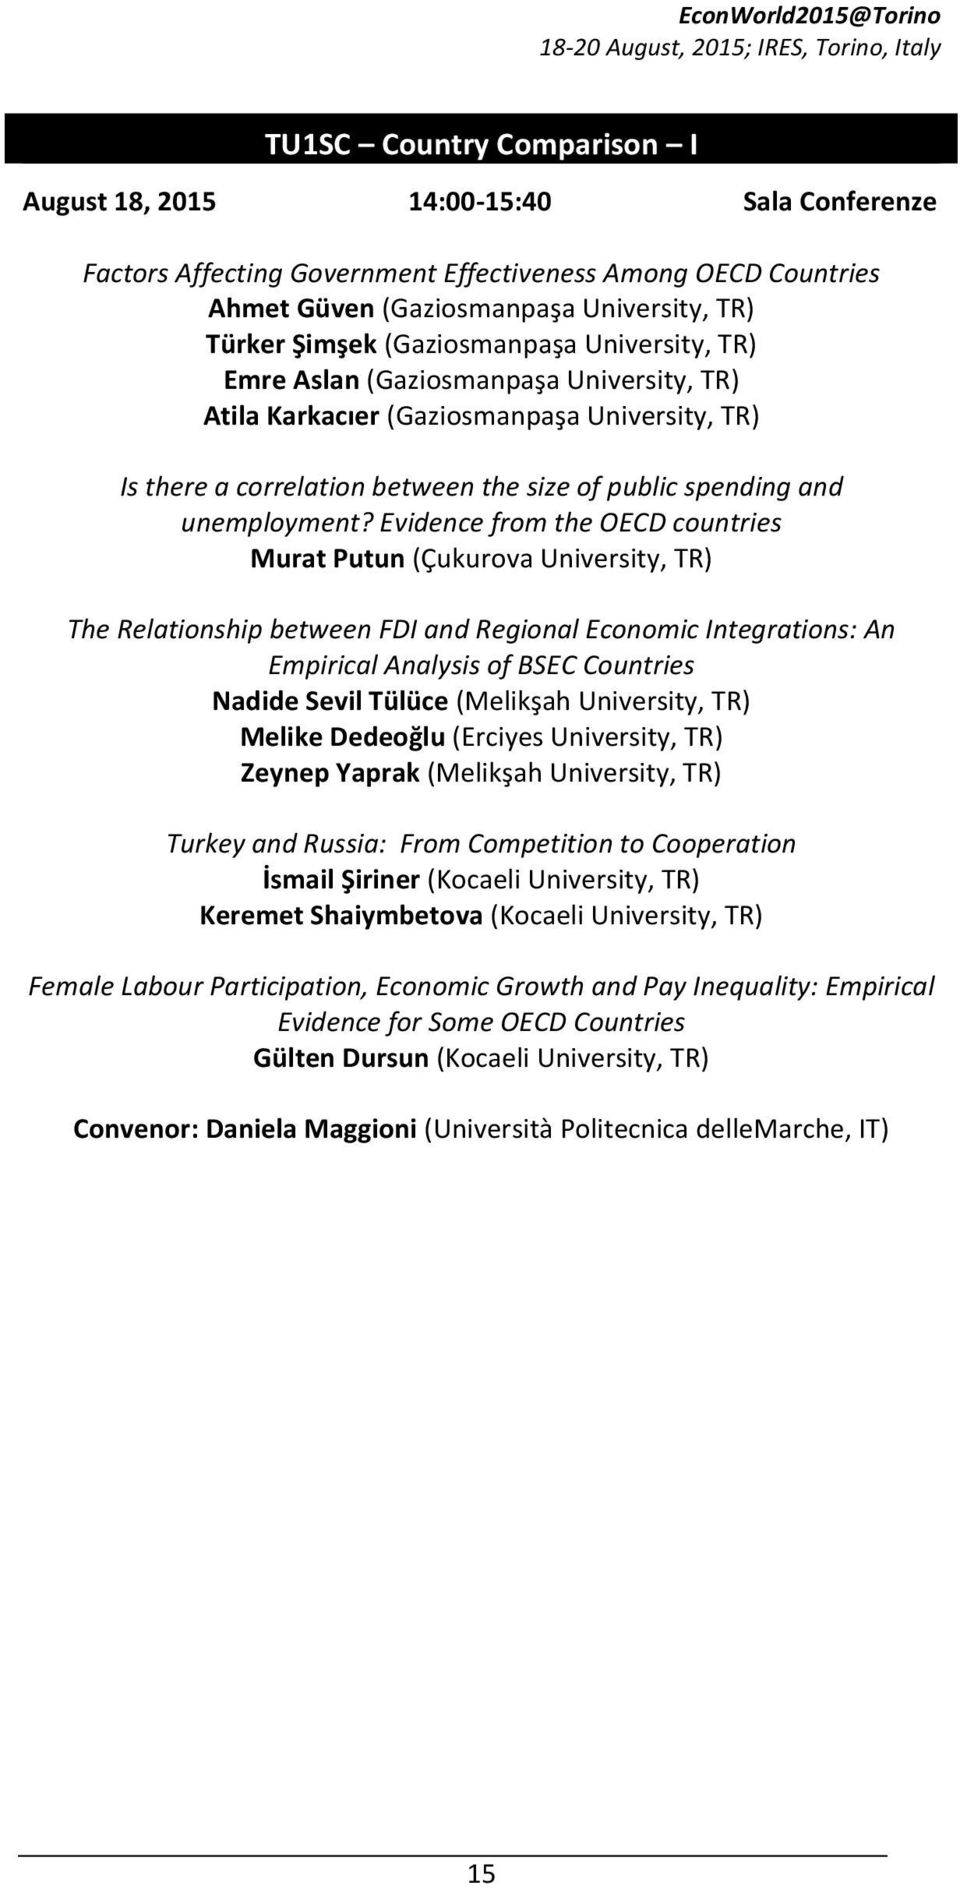 Evidence from the OECD countries Murat Putun (Çukurova University, TR) The Relationship between FDI and Regional Economic Integrations: An Empirical Analysis of BSEC Countries Nadide Sevil Tülüce